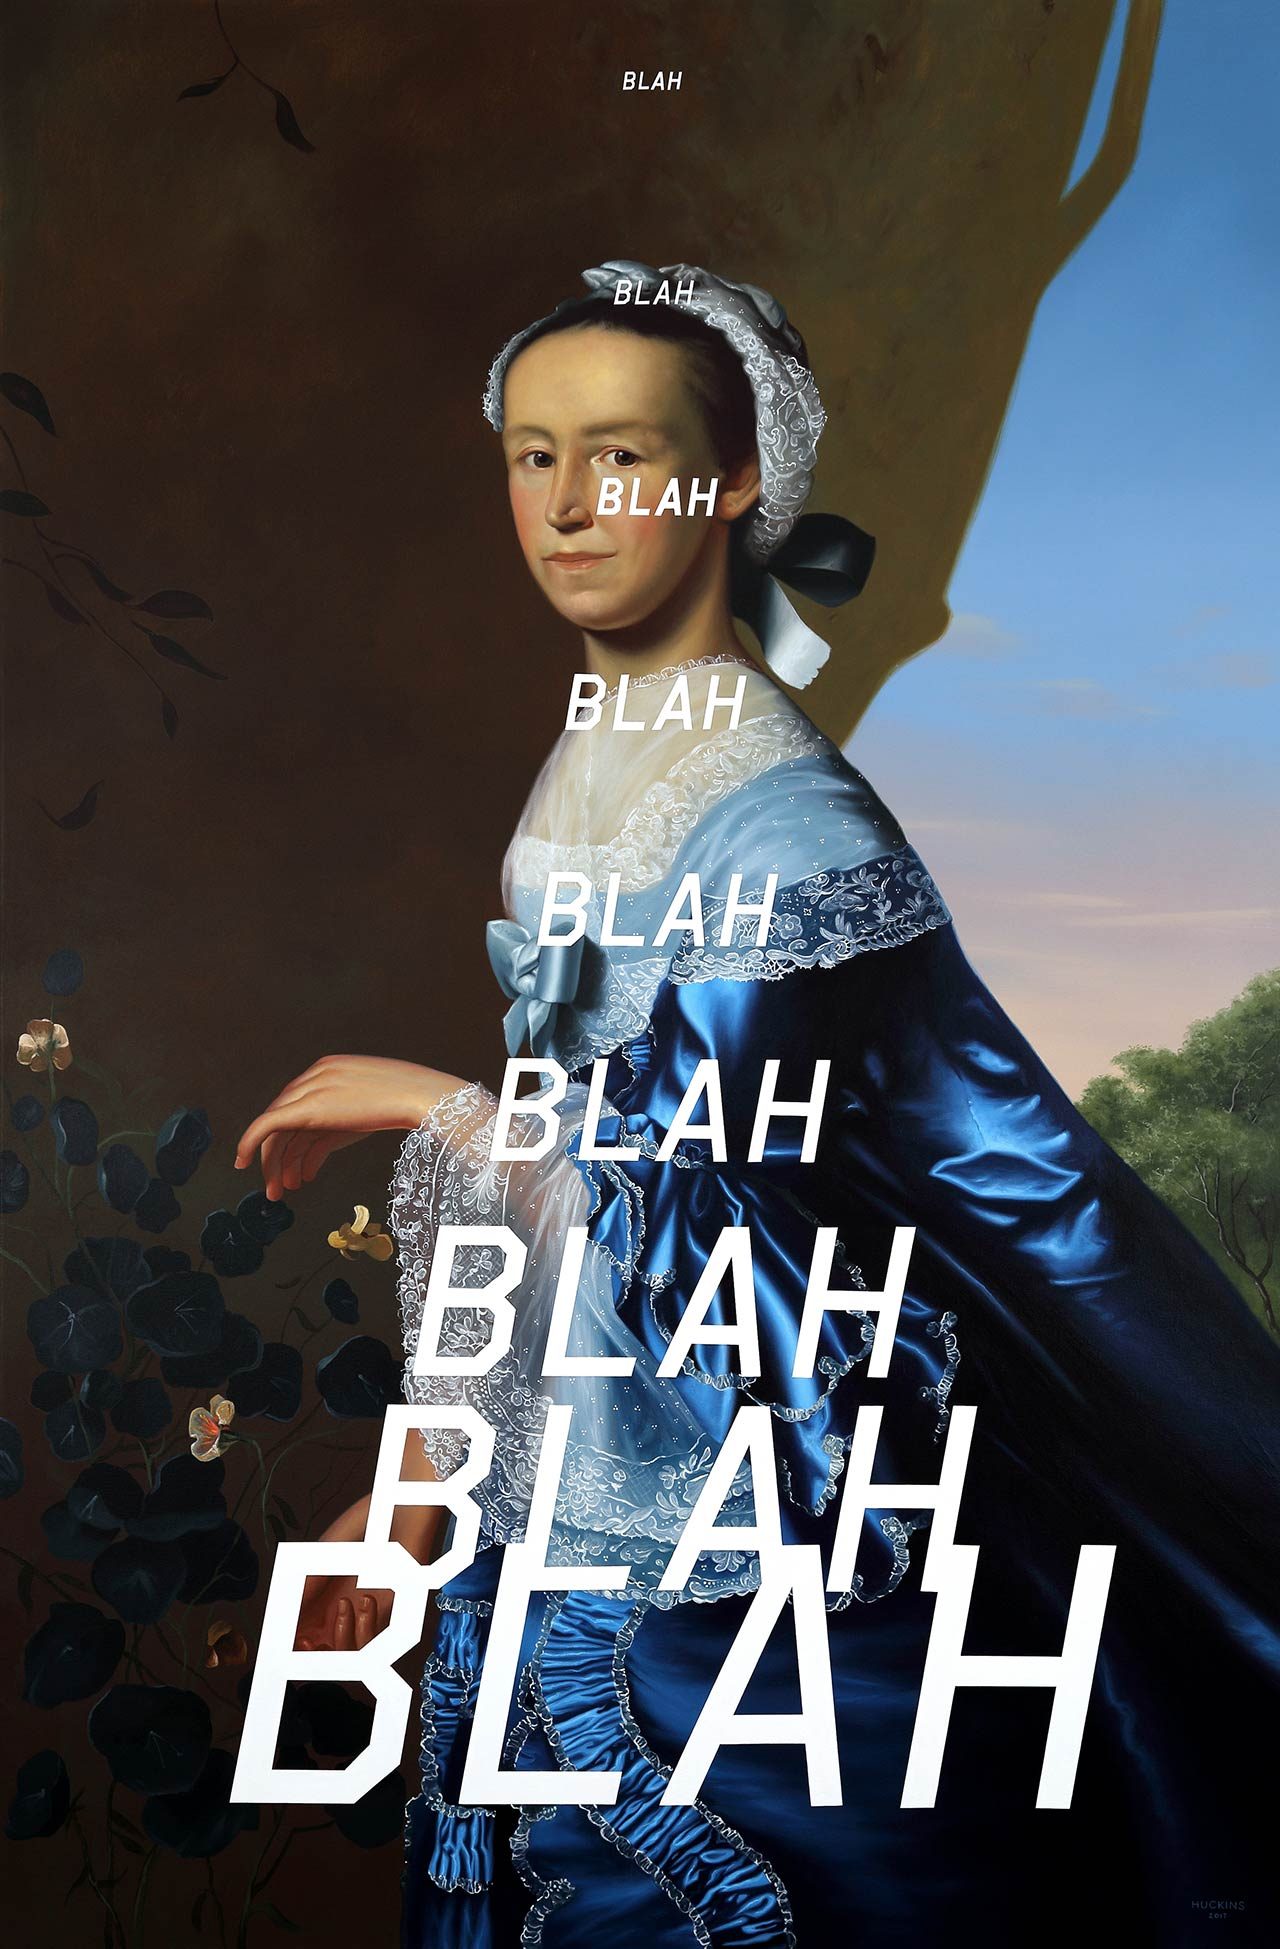 Shawn Huckins, Mrs James Warren: Blah Blah Blah, 2017. Acrylic on canvas, 80 x 52 in (203 x 132 cm).